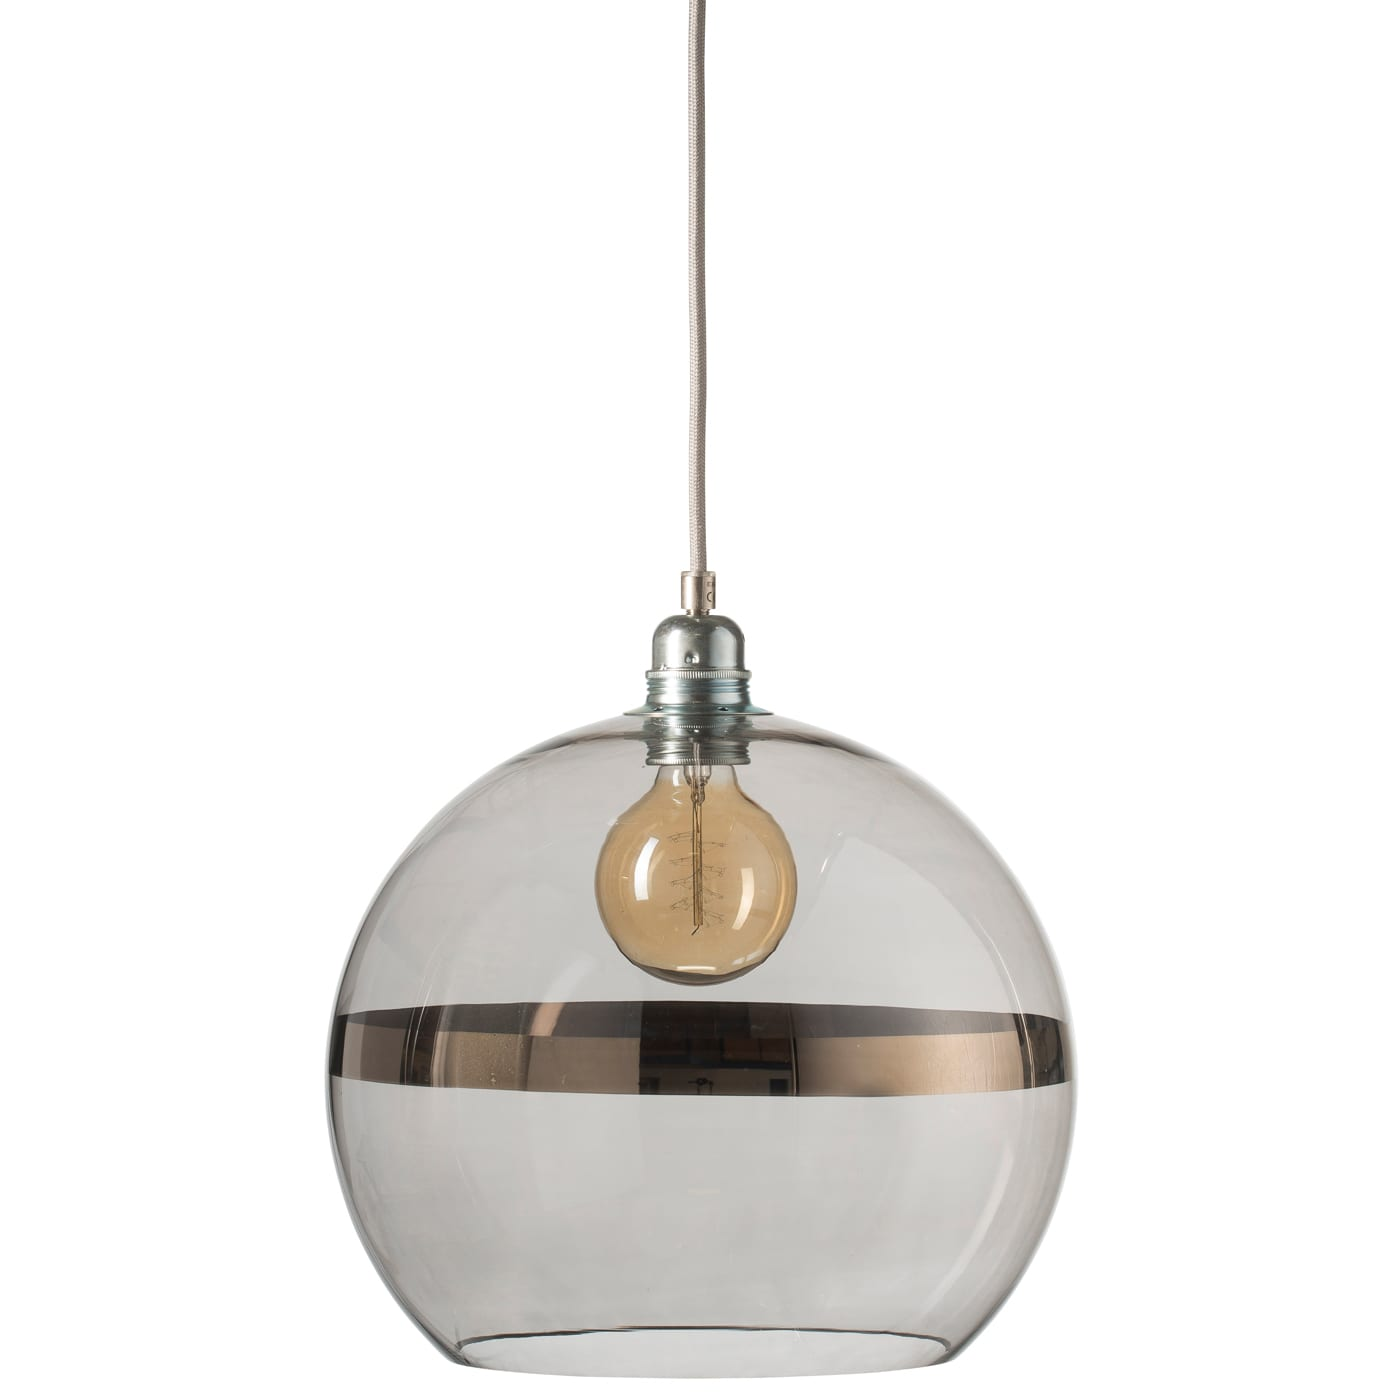 Rowan pendant lamp, platinum stripe on grey, 28cm